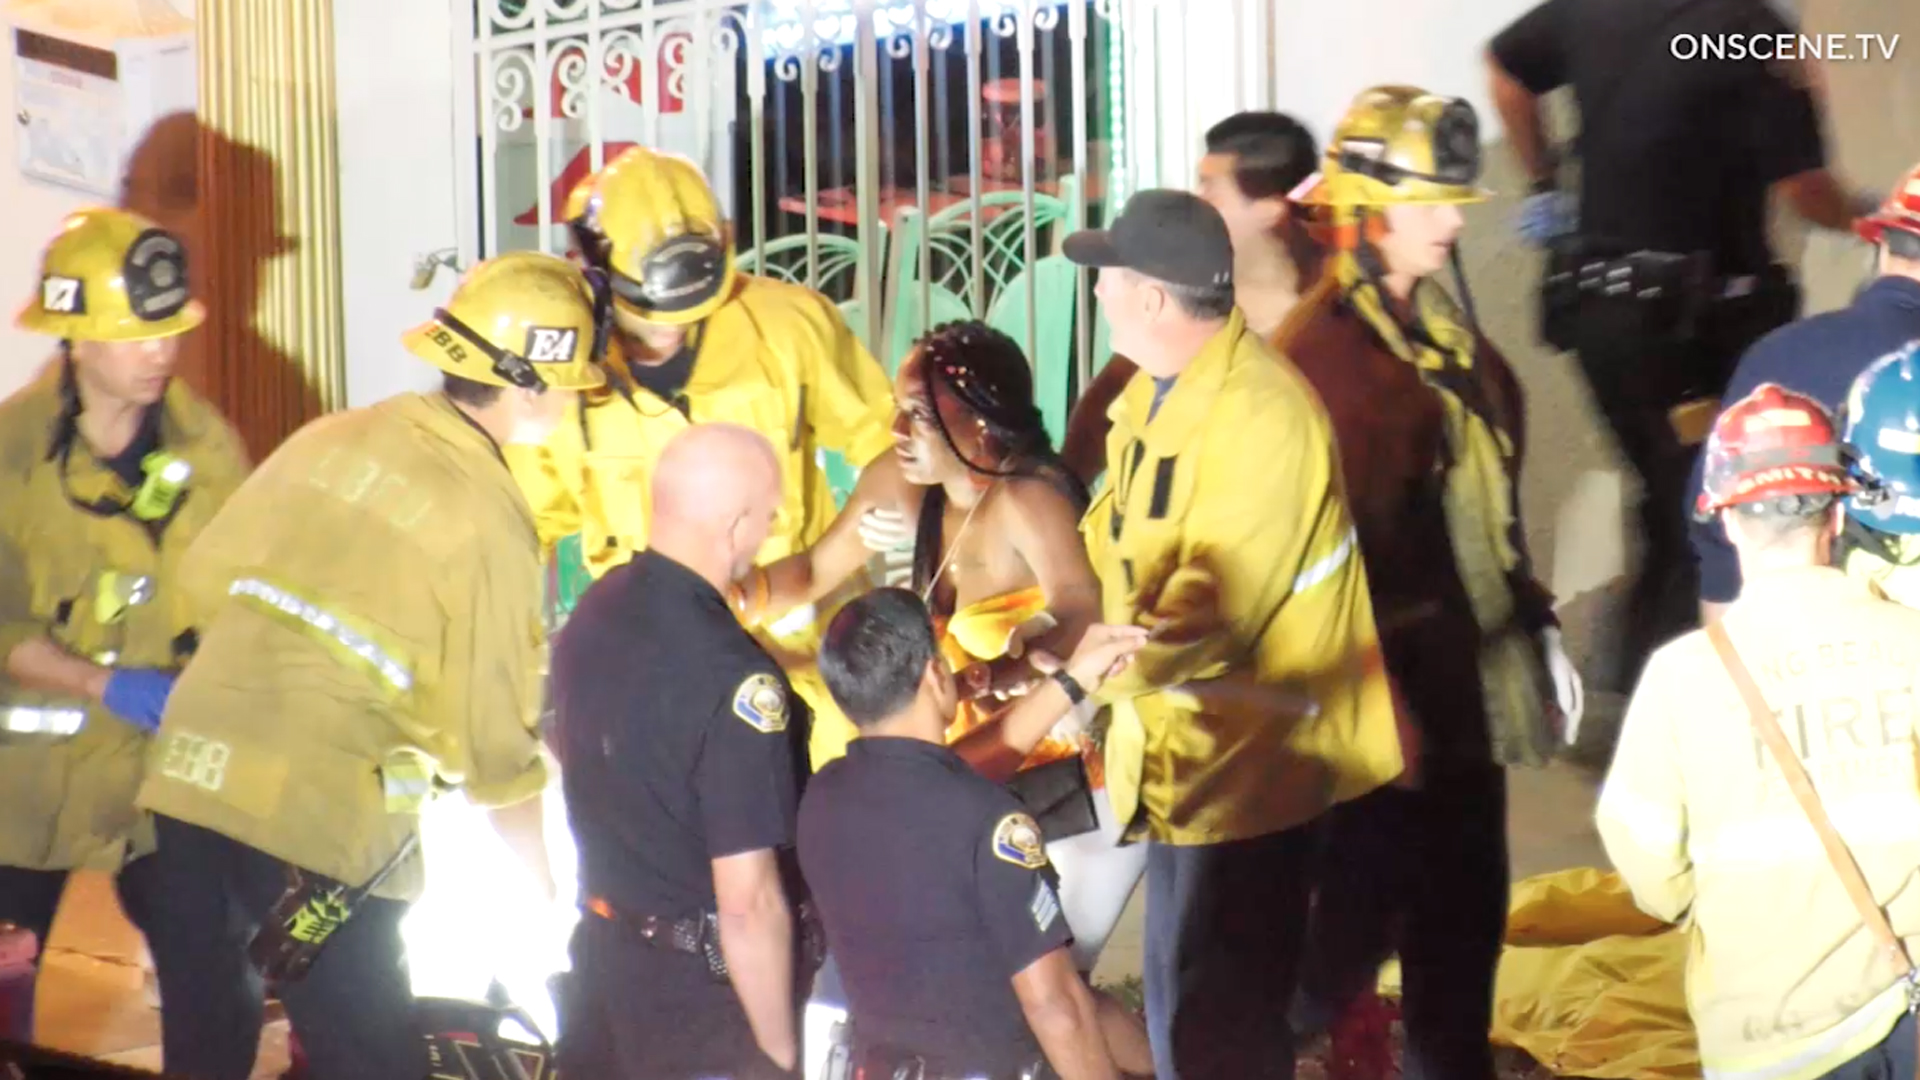 First responders assist a woman injured during a shooting at a house party in Long Beach on Oct. 29, 2019. (Credit: OnScene.TV)